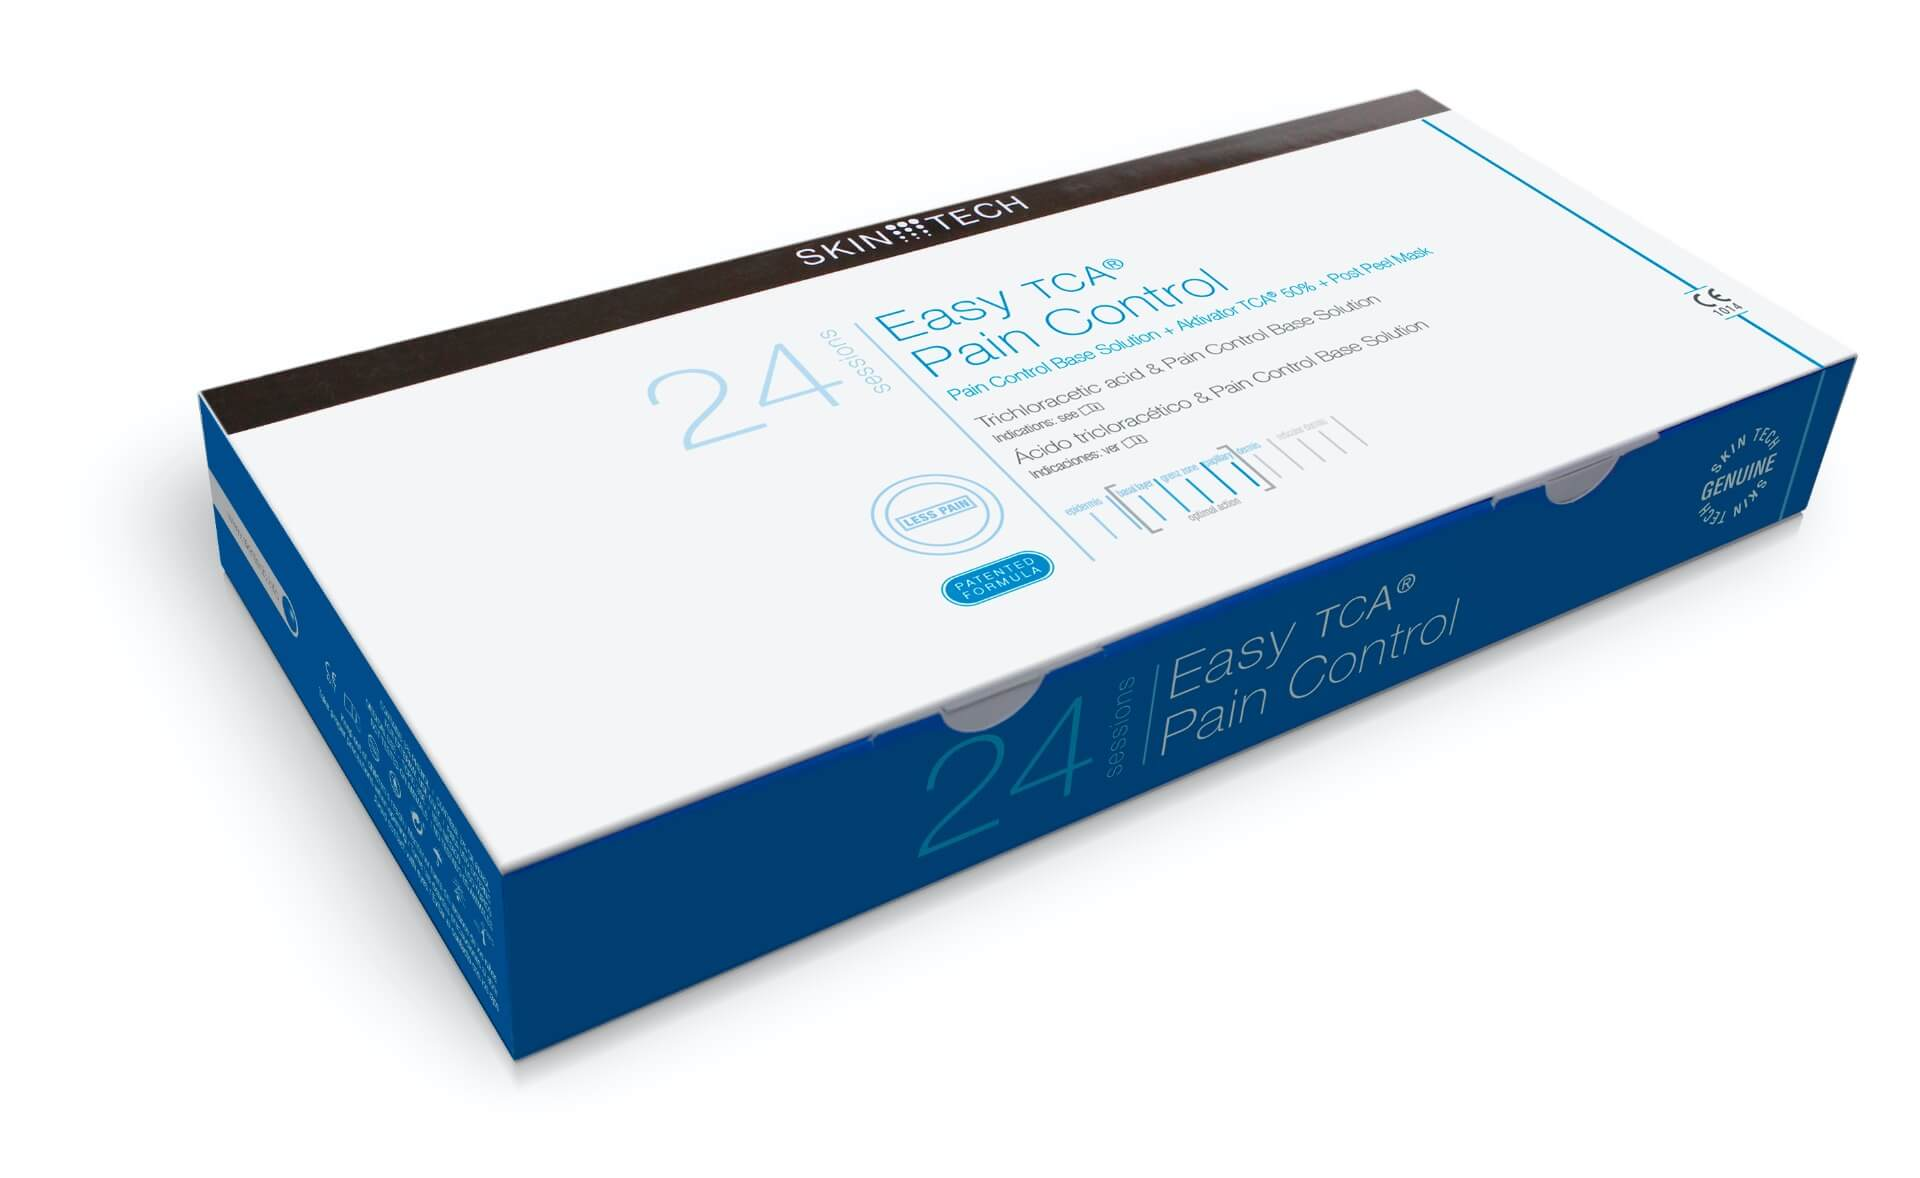 Skin Tech Easy TCA Pain Control 24 sessions